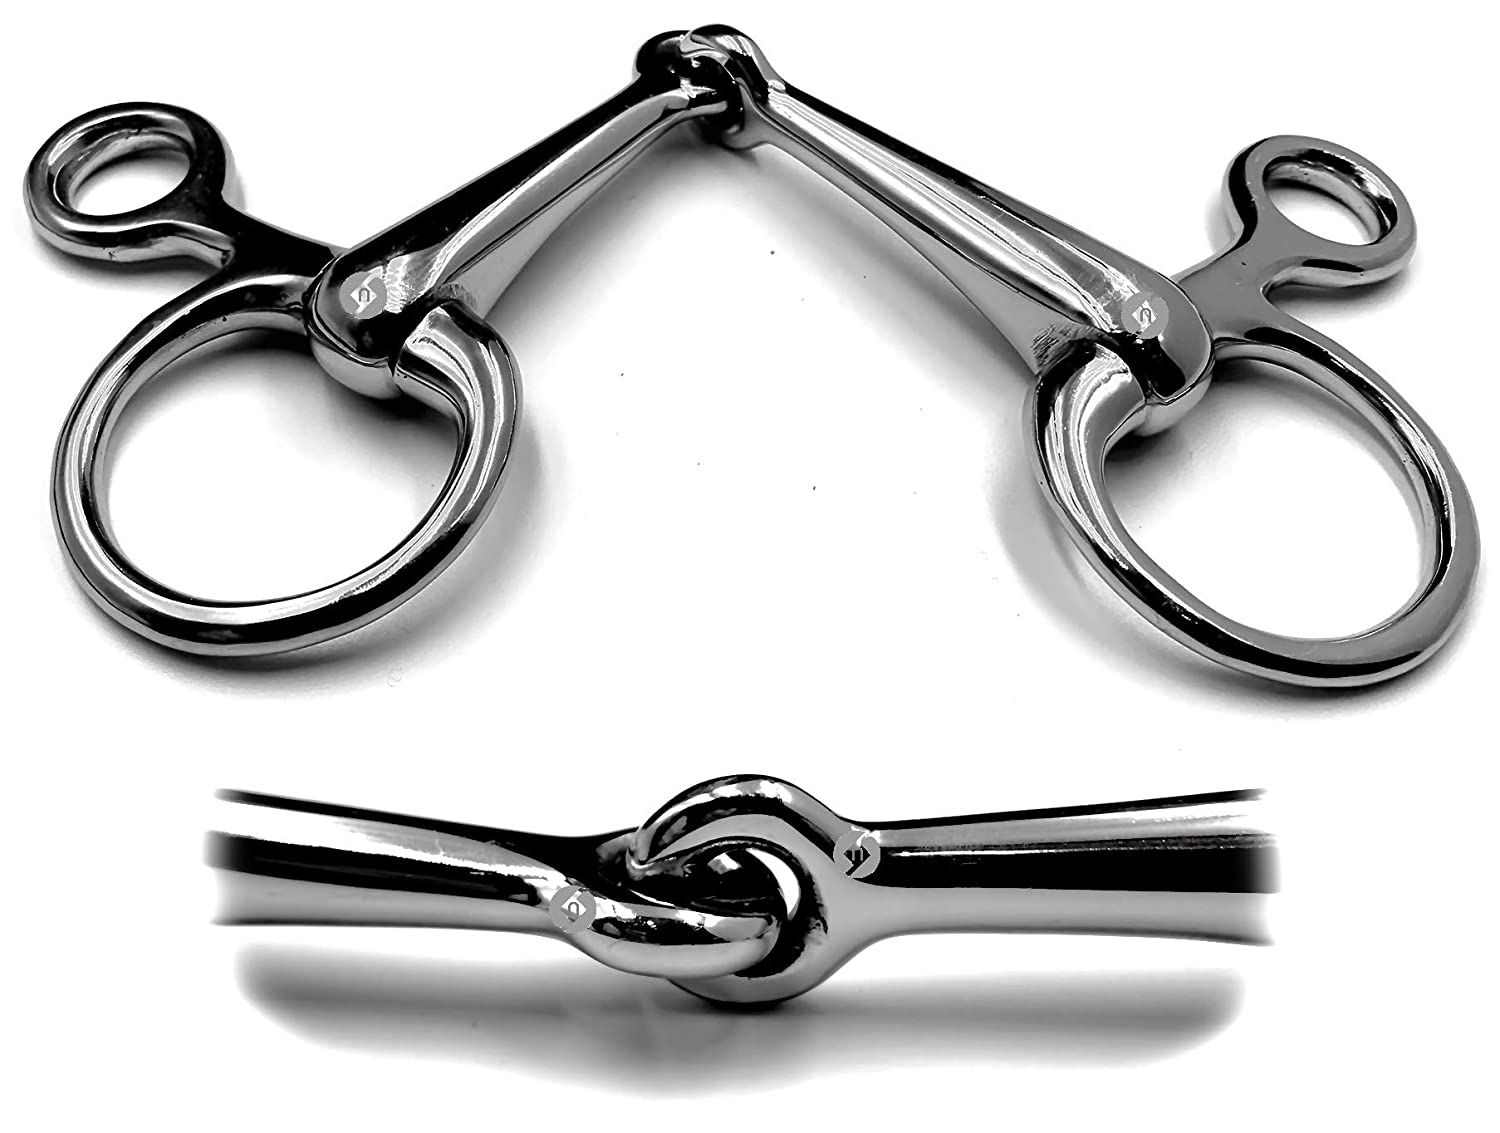 OTTE Baucher Hanging Cheek Snaffle Single Joint Stainless Steel Horse Bit All Sizes 4.5